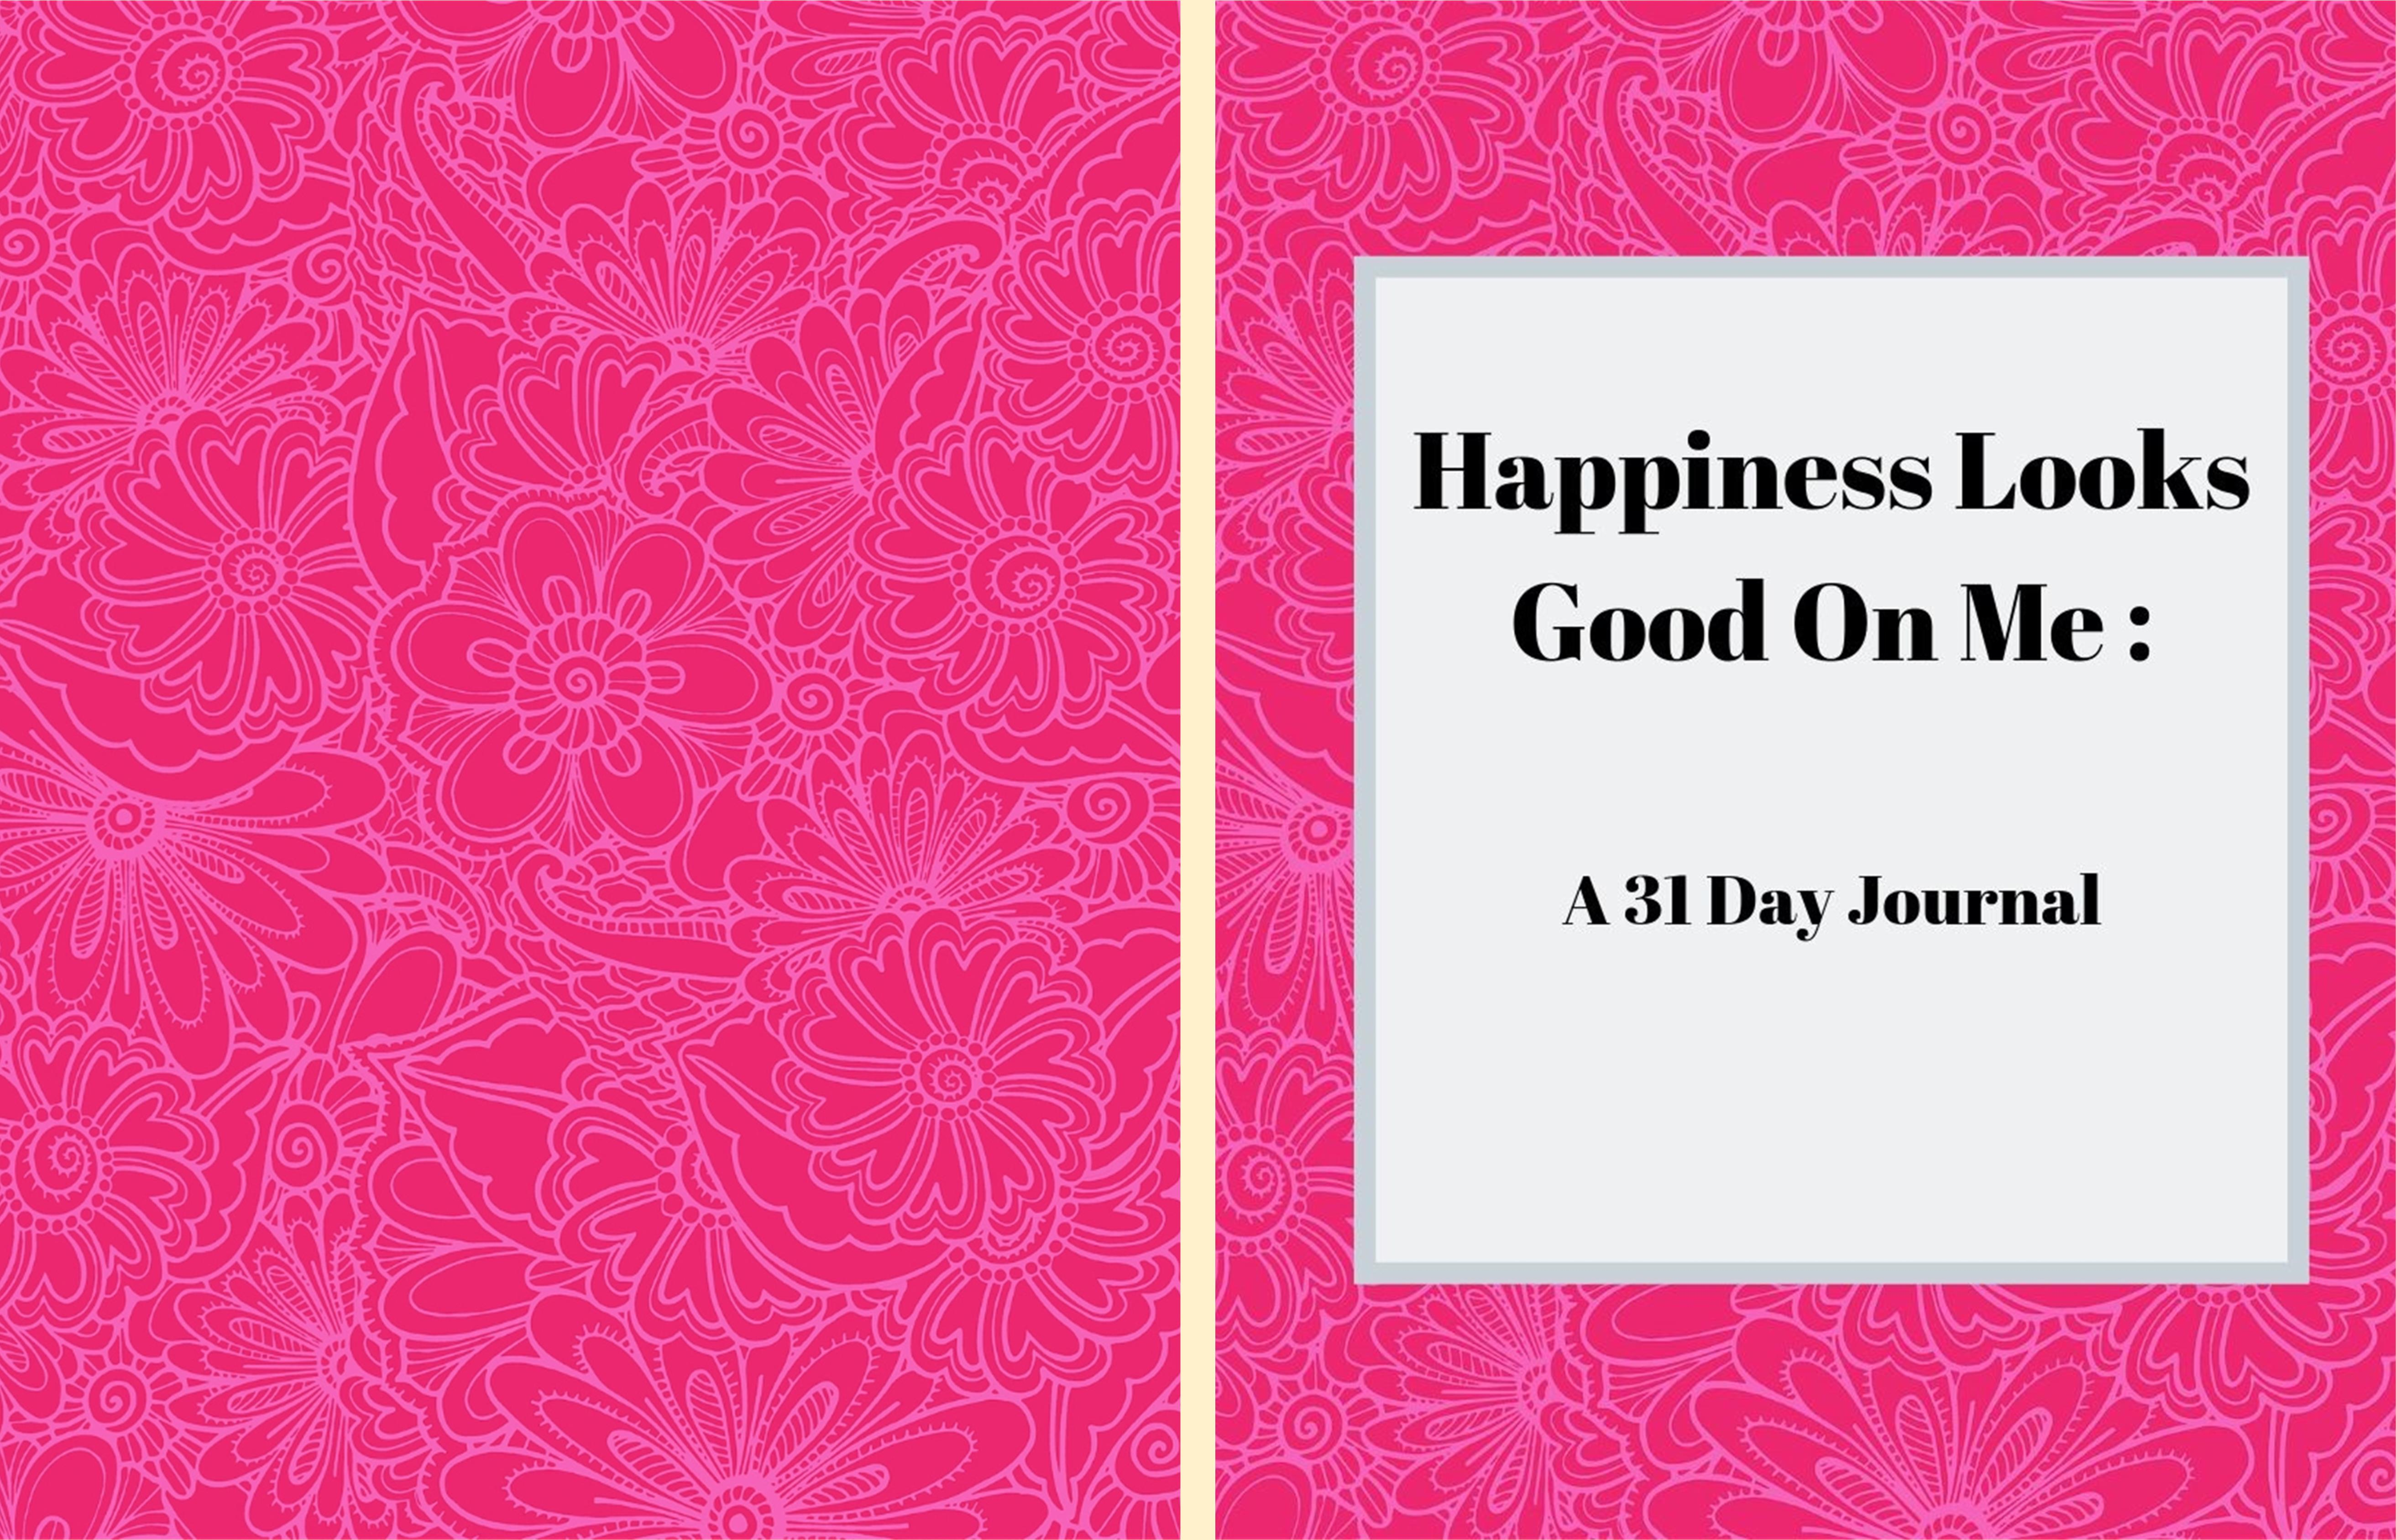 Happiness Looks Good On Me: A 31 Day Journal cover image